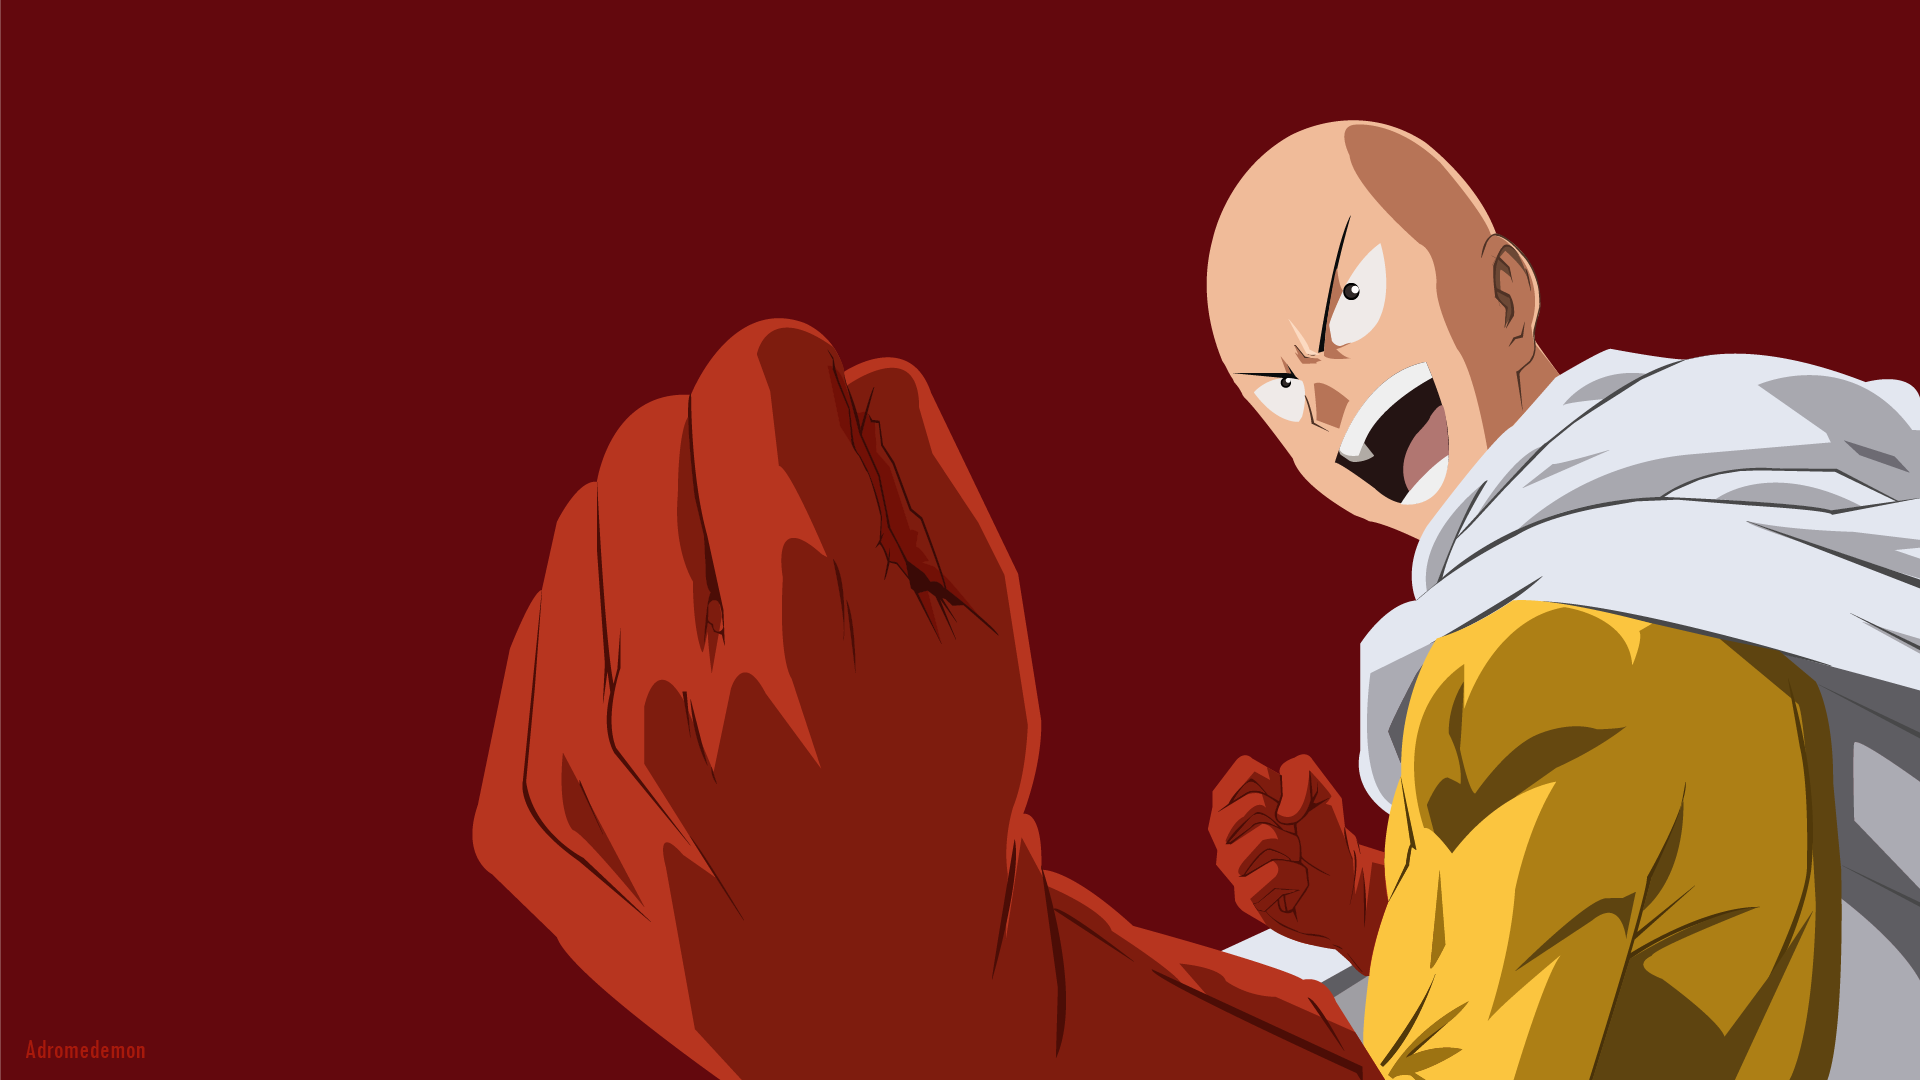 Saitama One Punch Man Hd Wallpaper From Gallsource Com Com